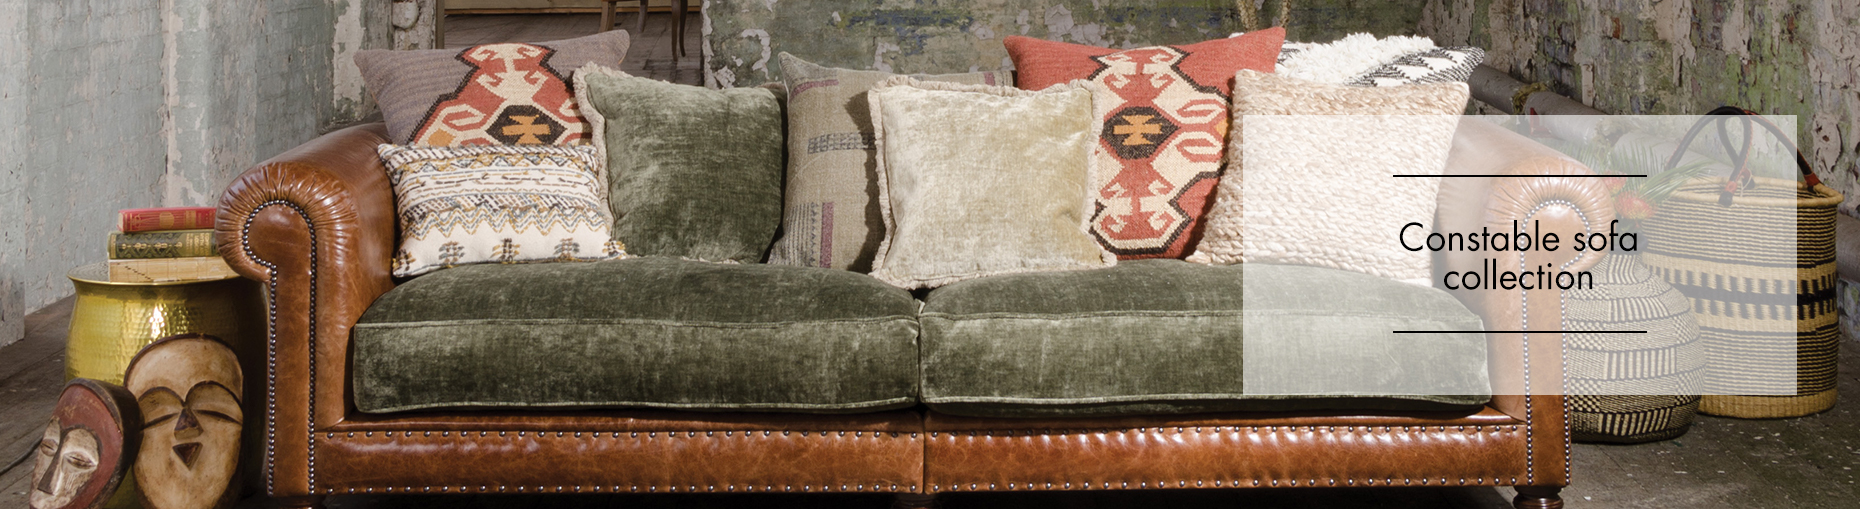 Constable Sofa collection  from Tetrad at Forrest Furnishing